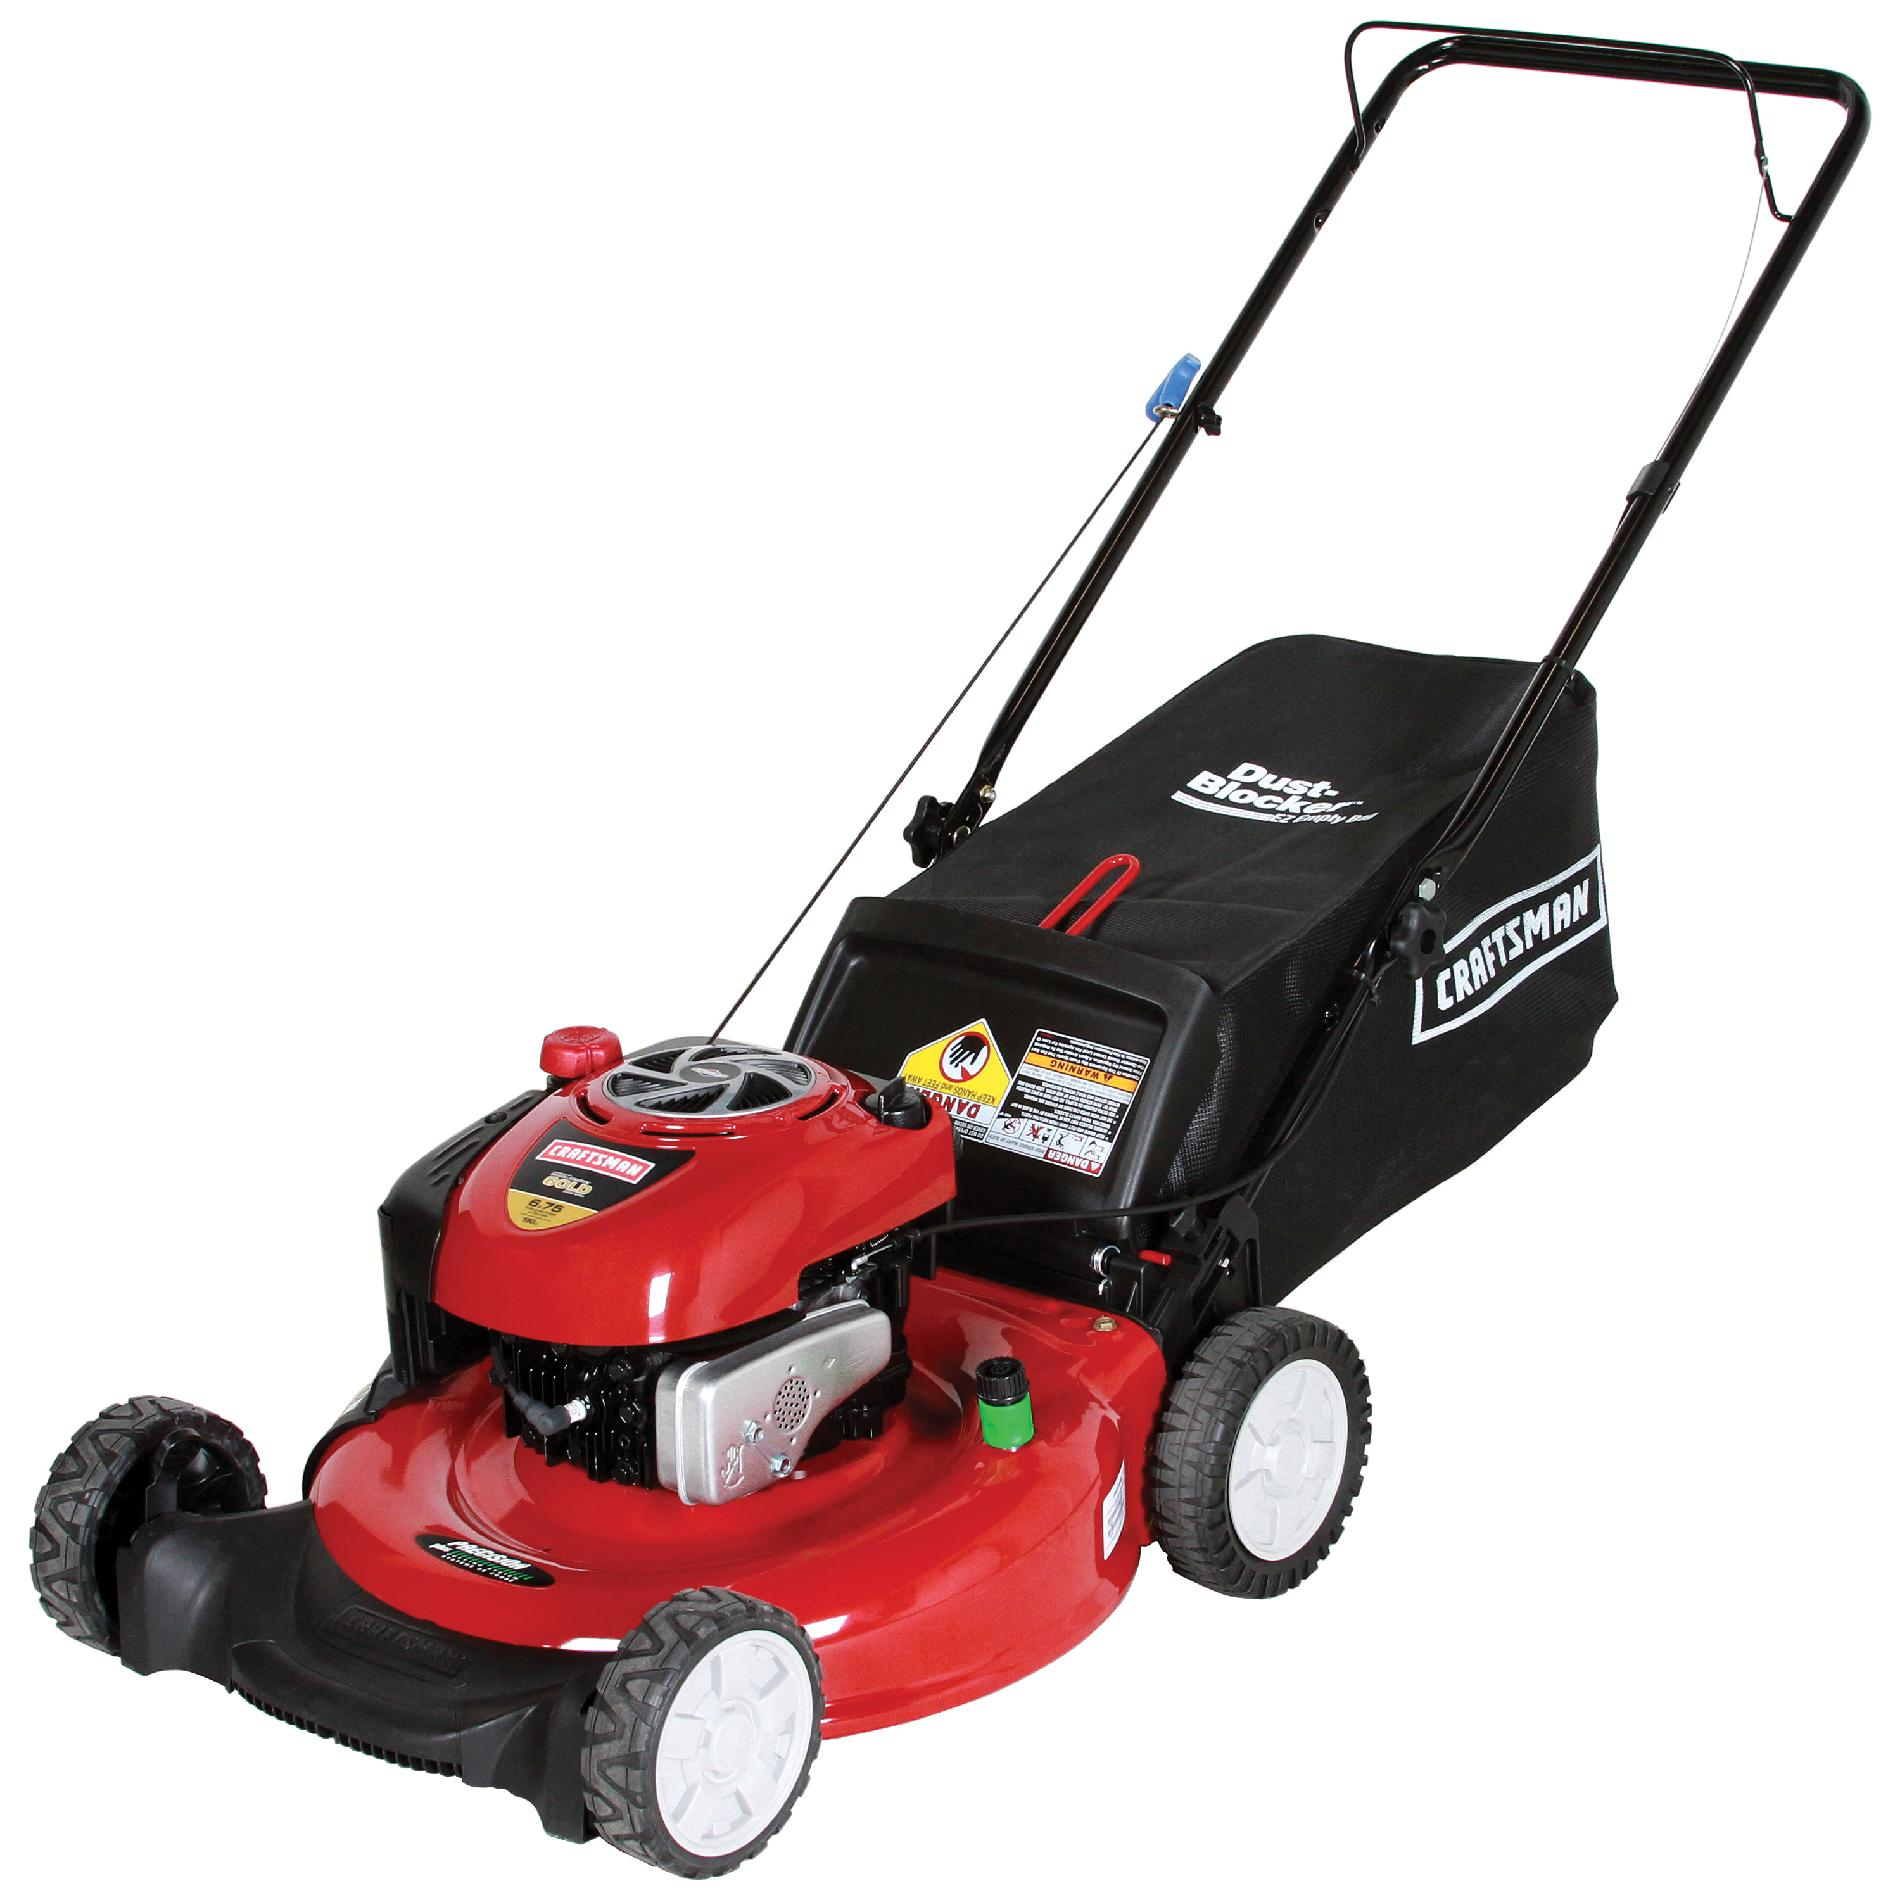 Craftsman 190cc* Briggs & Stratton Engine, Low-Wheel Rear Bag Push Mower